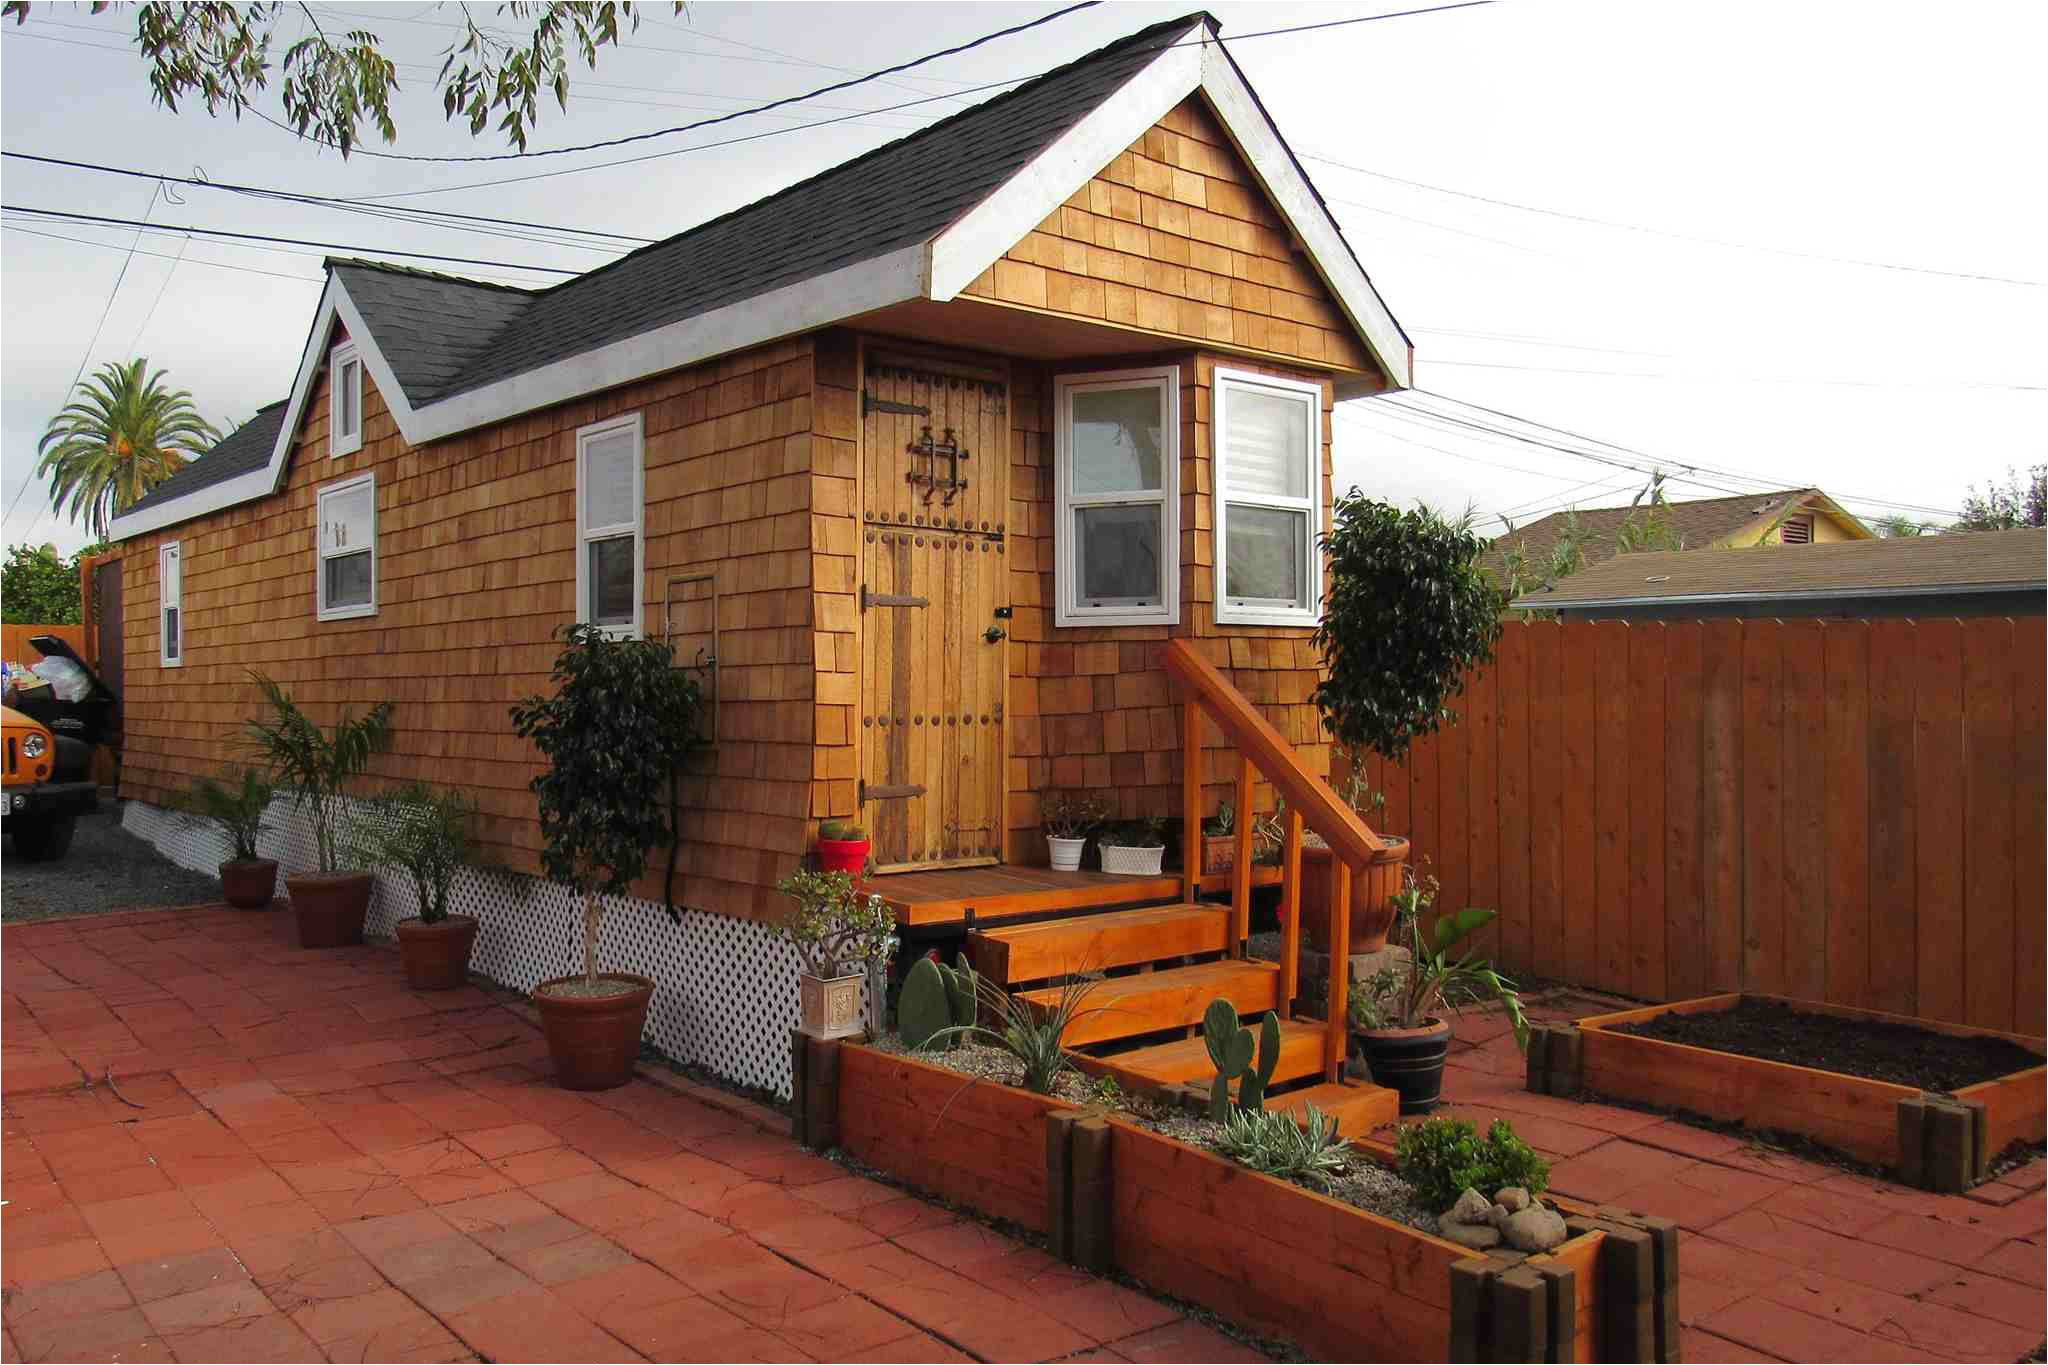 Homes for Sale In northwest Reno 15 Livable Tiny House Communities